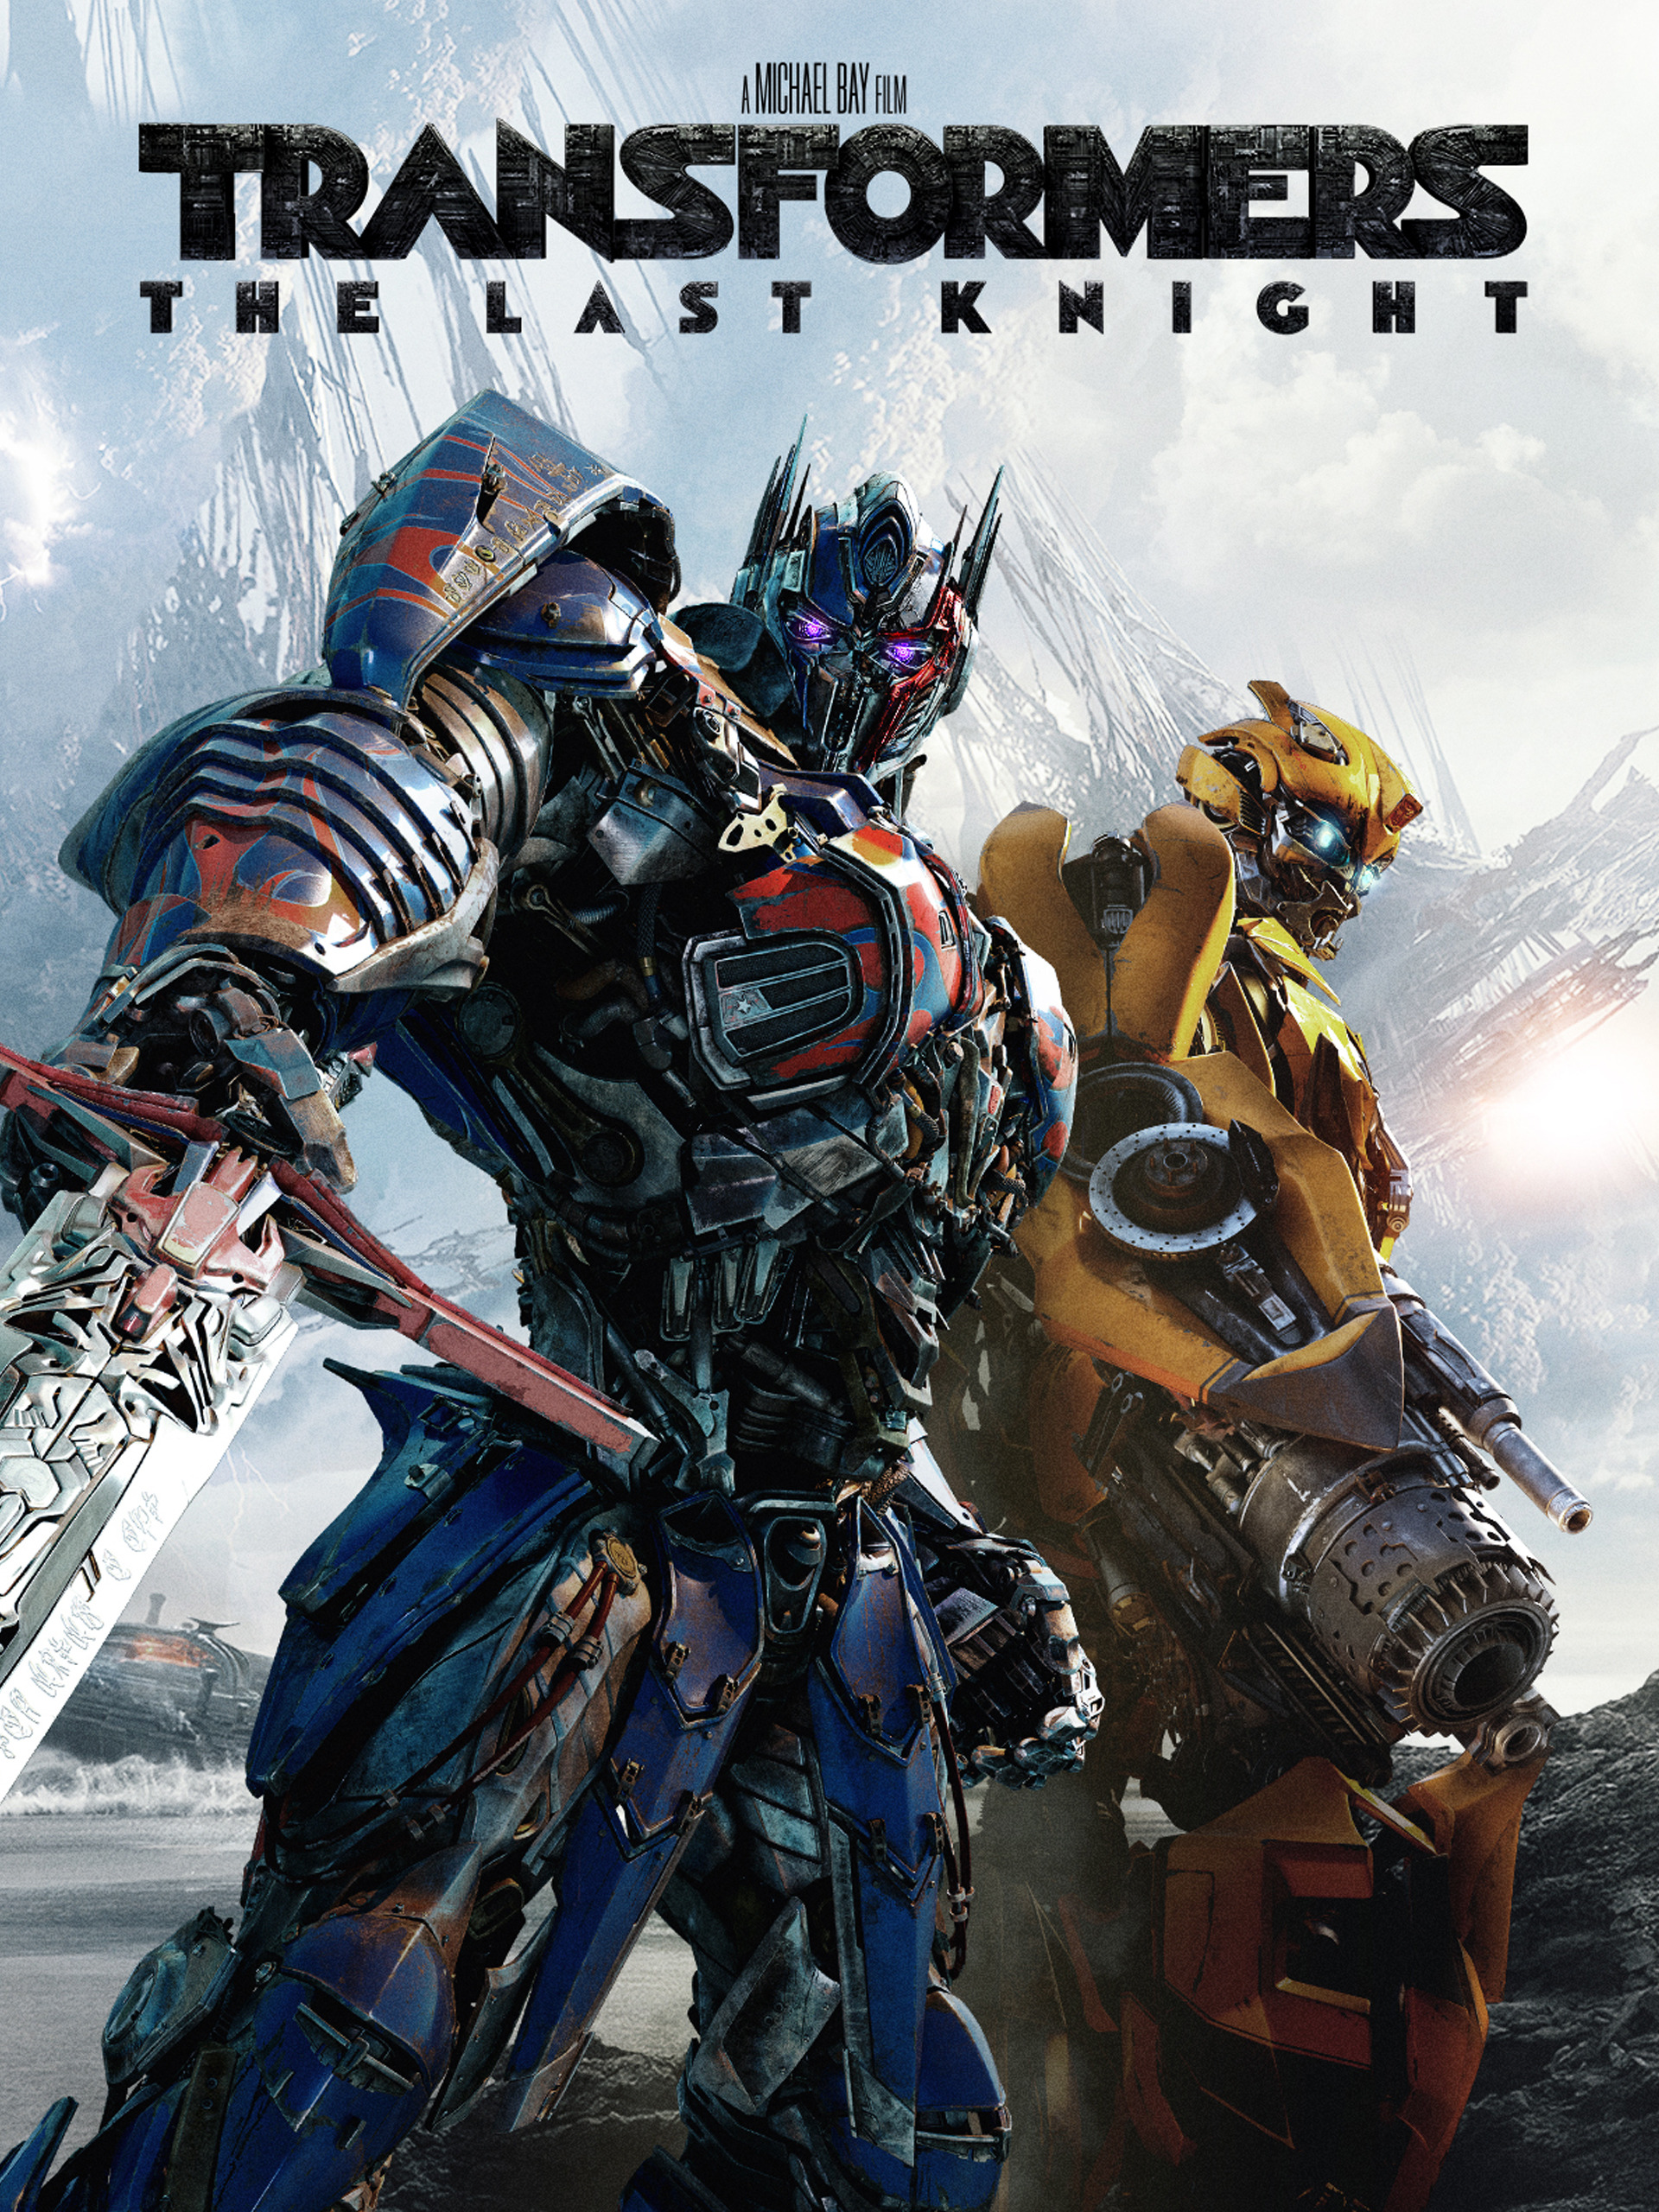 FOX ACTION MOVIES: TRANSFORMERS THE LAST KNIGHT